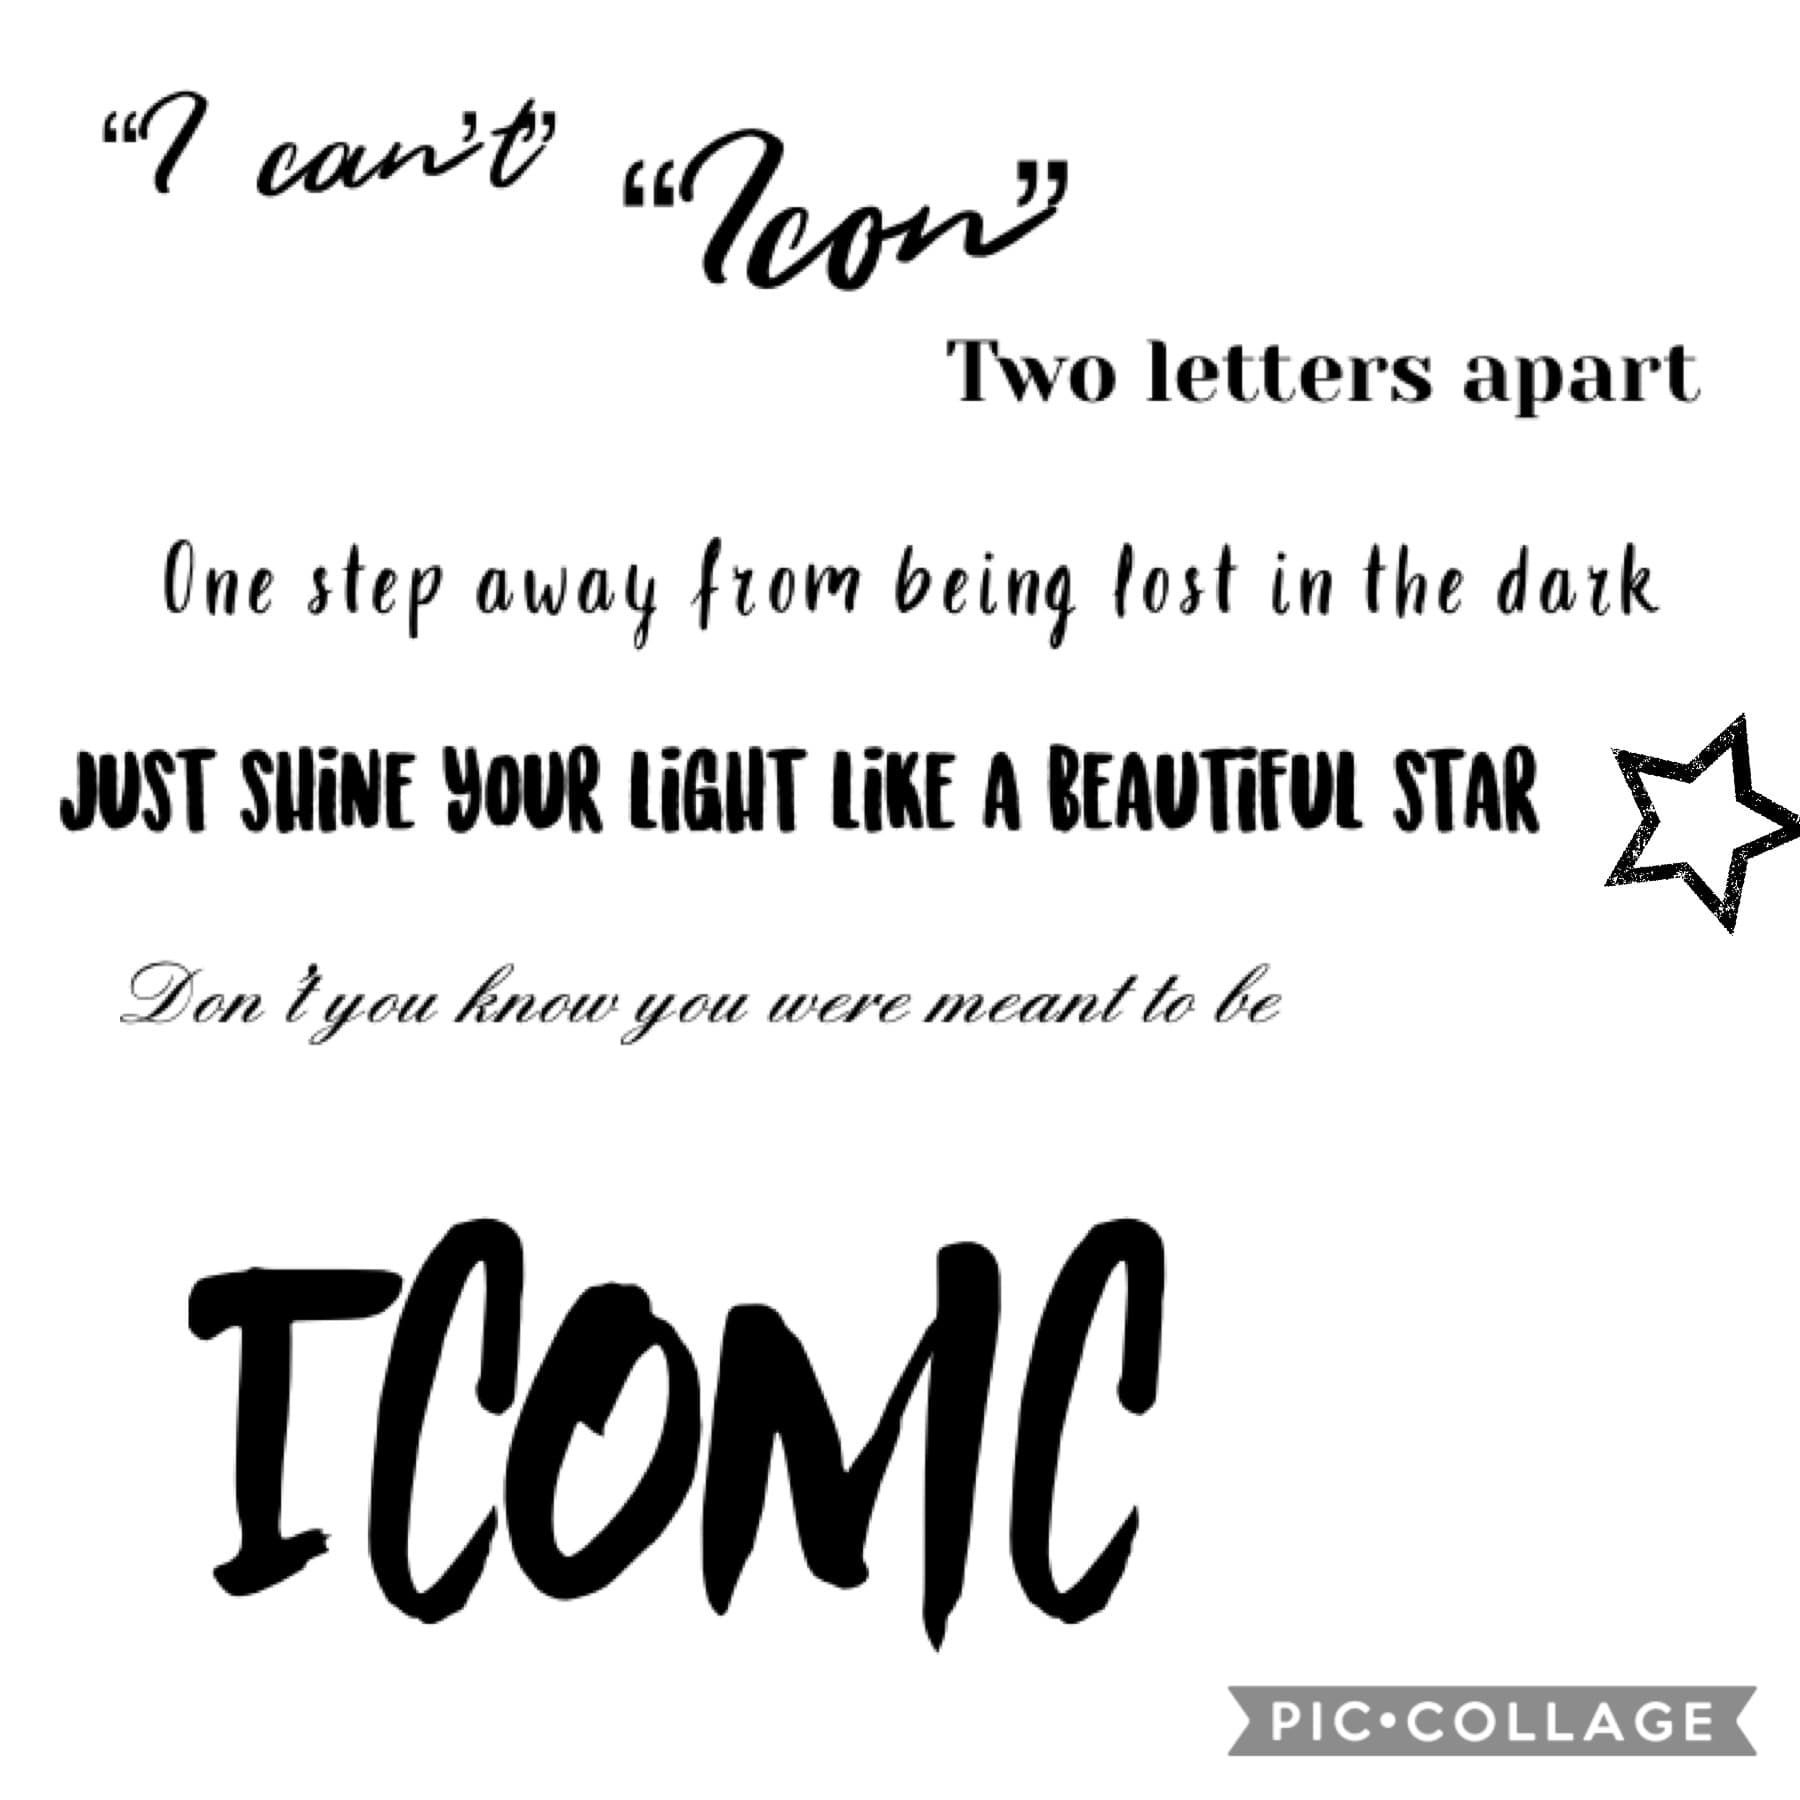 🙌You're iconic asf, don't even try and tell yourself that you're not🙌Yesterday was my fifteenth birthday, and it was great. Ready for another great year✌️💞